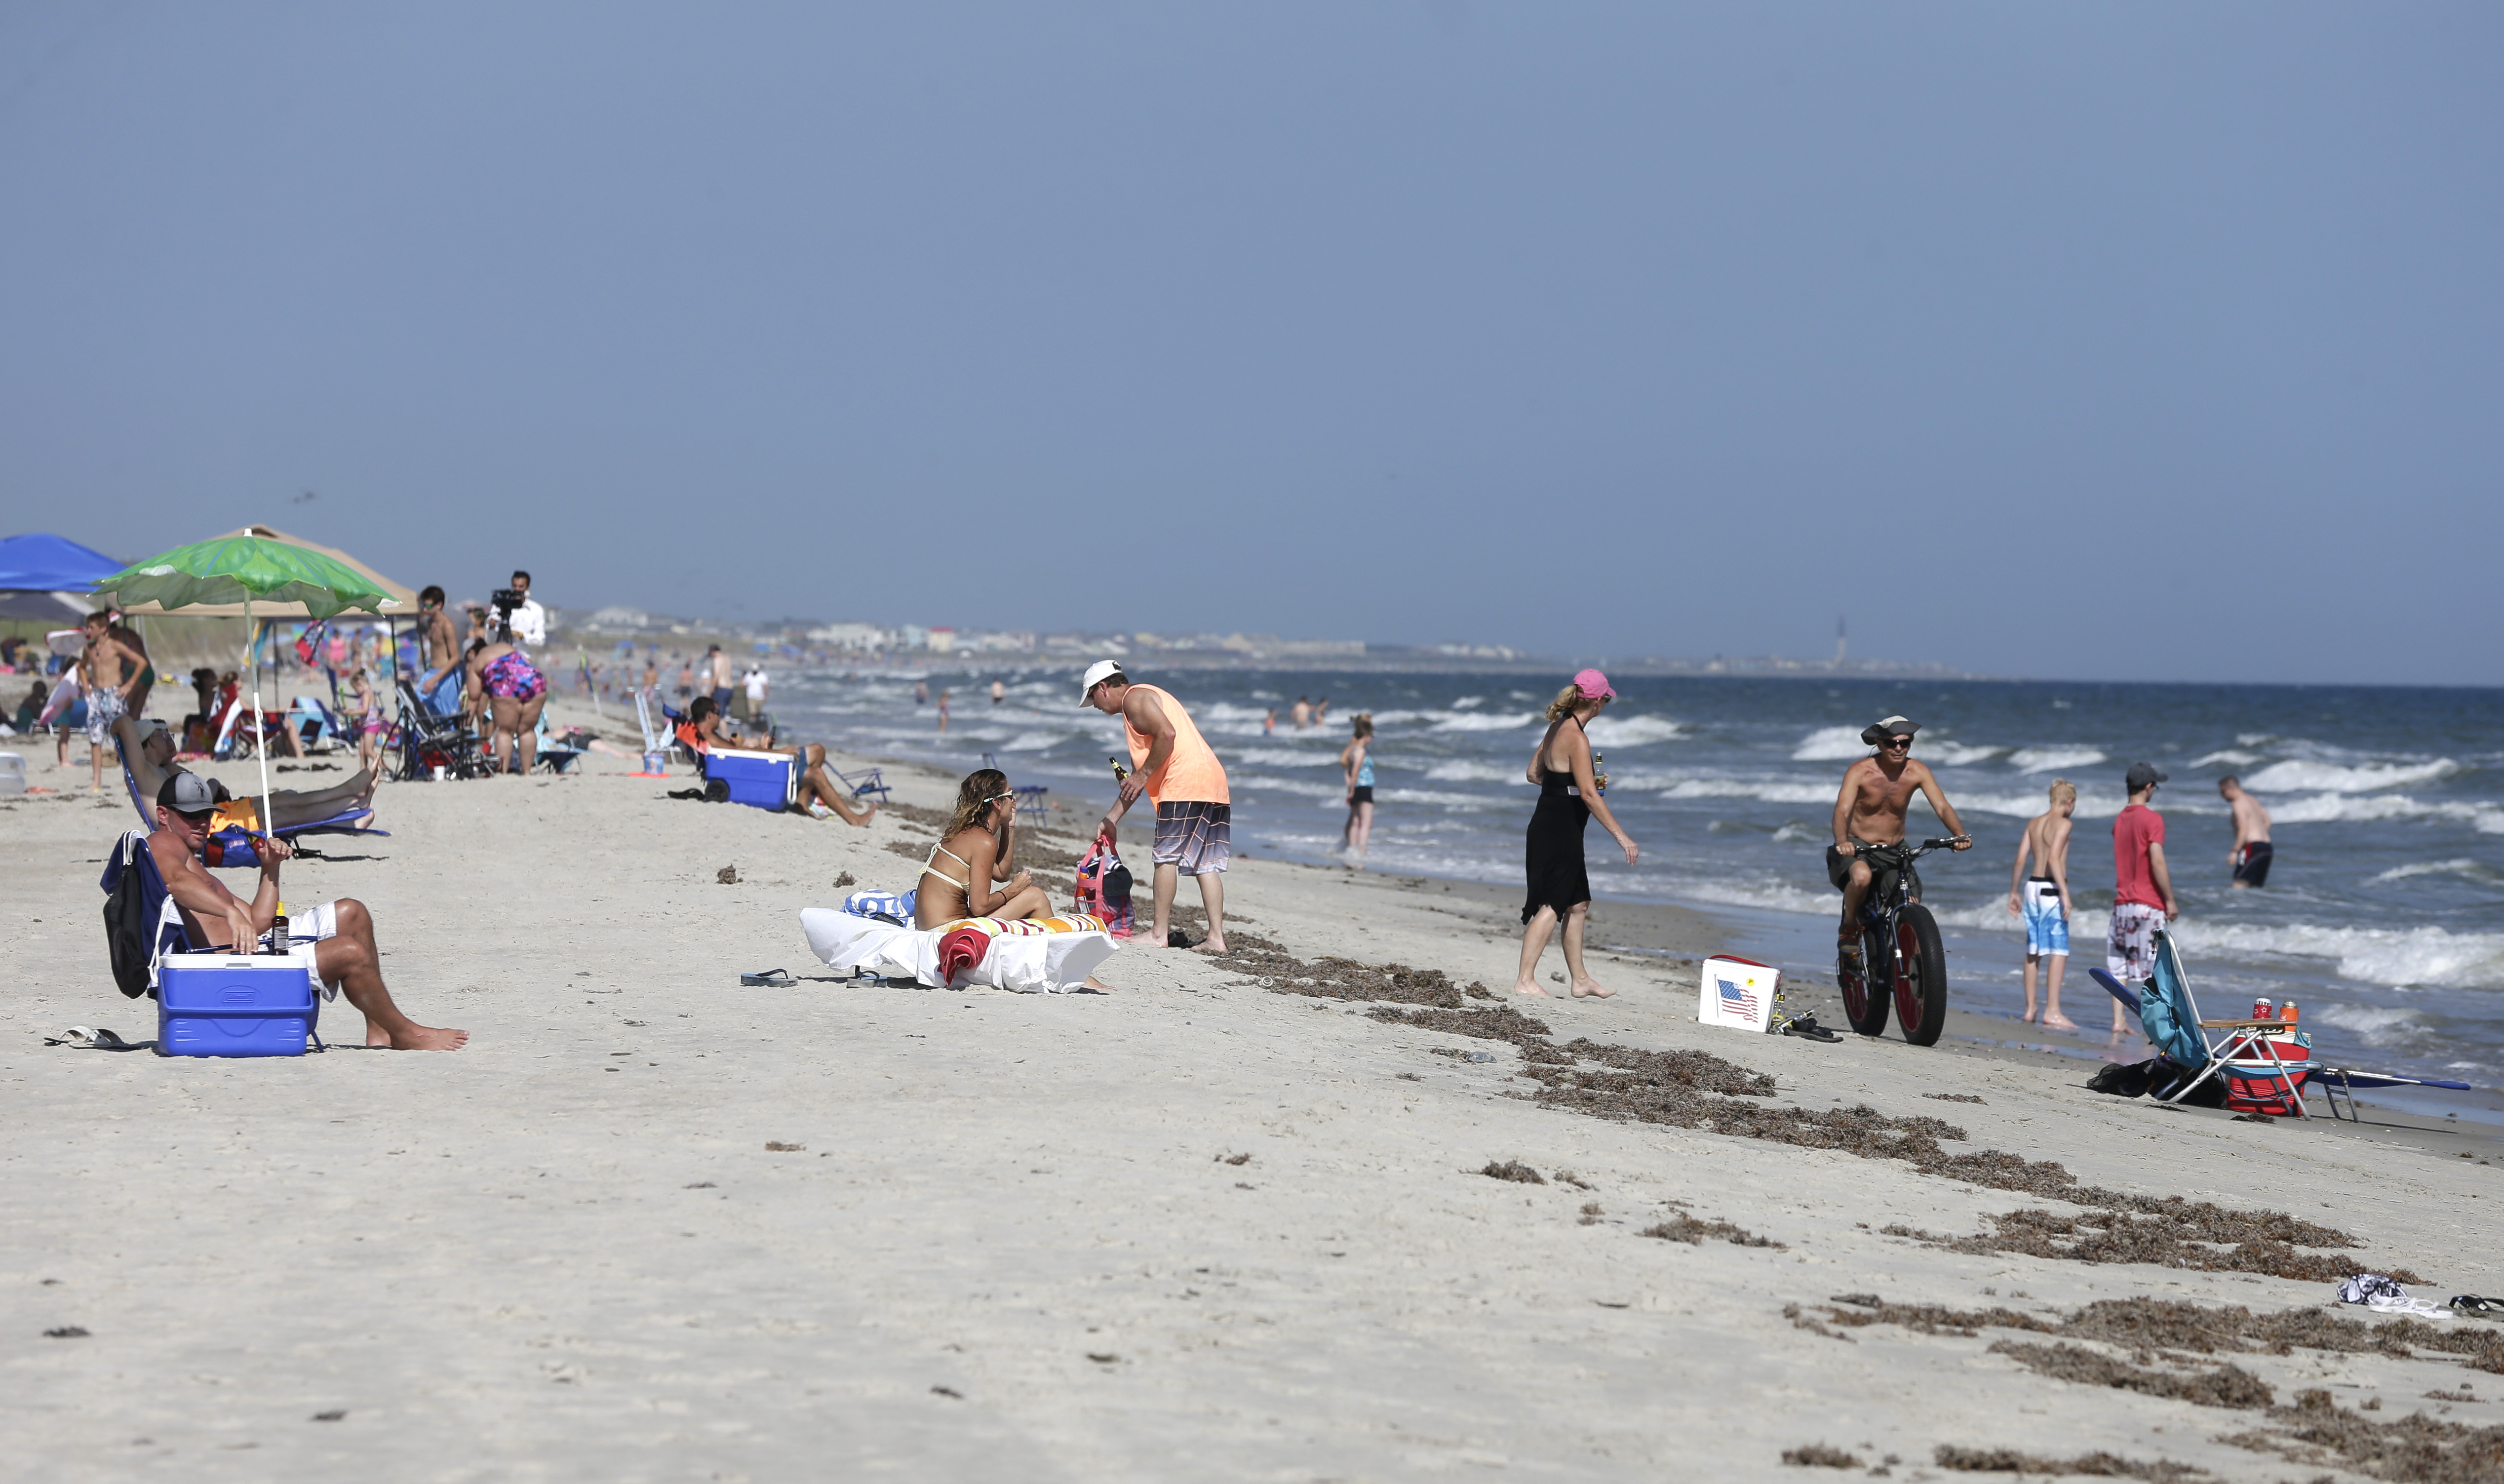 Vacationers Relax On The Bench And In Surf Oak Island N C Monday